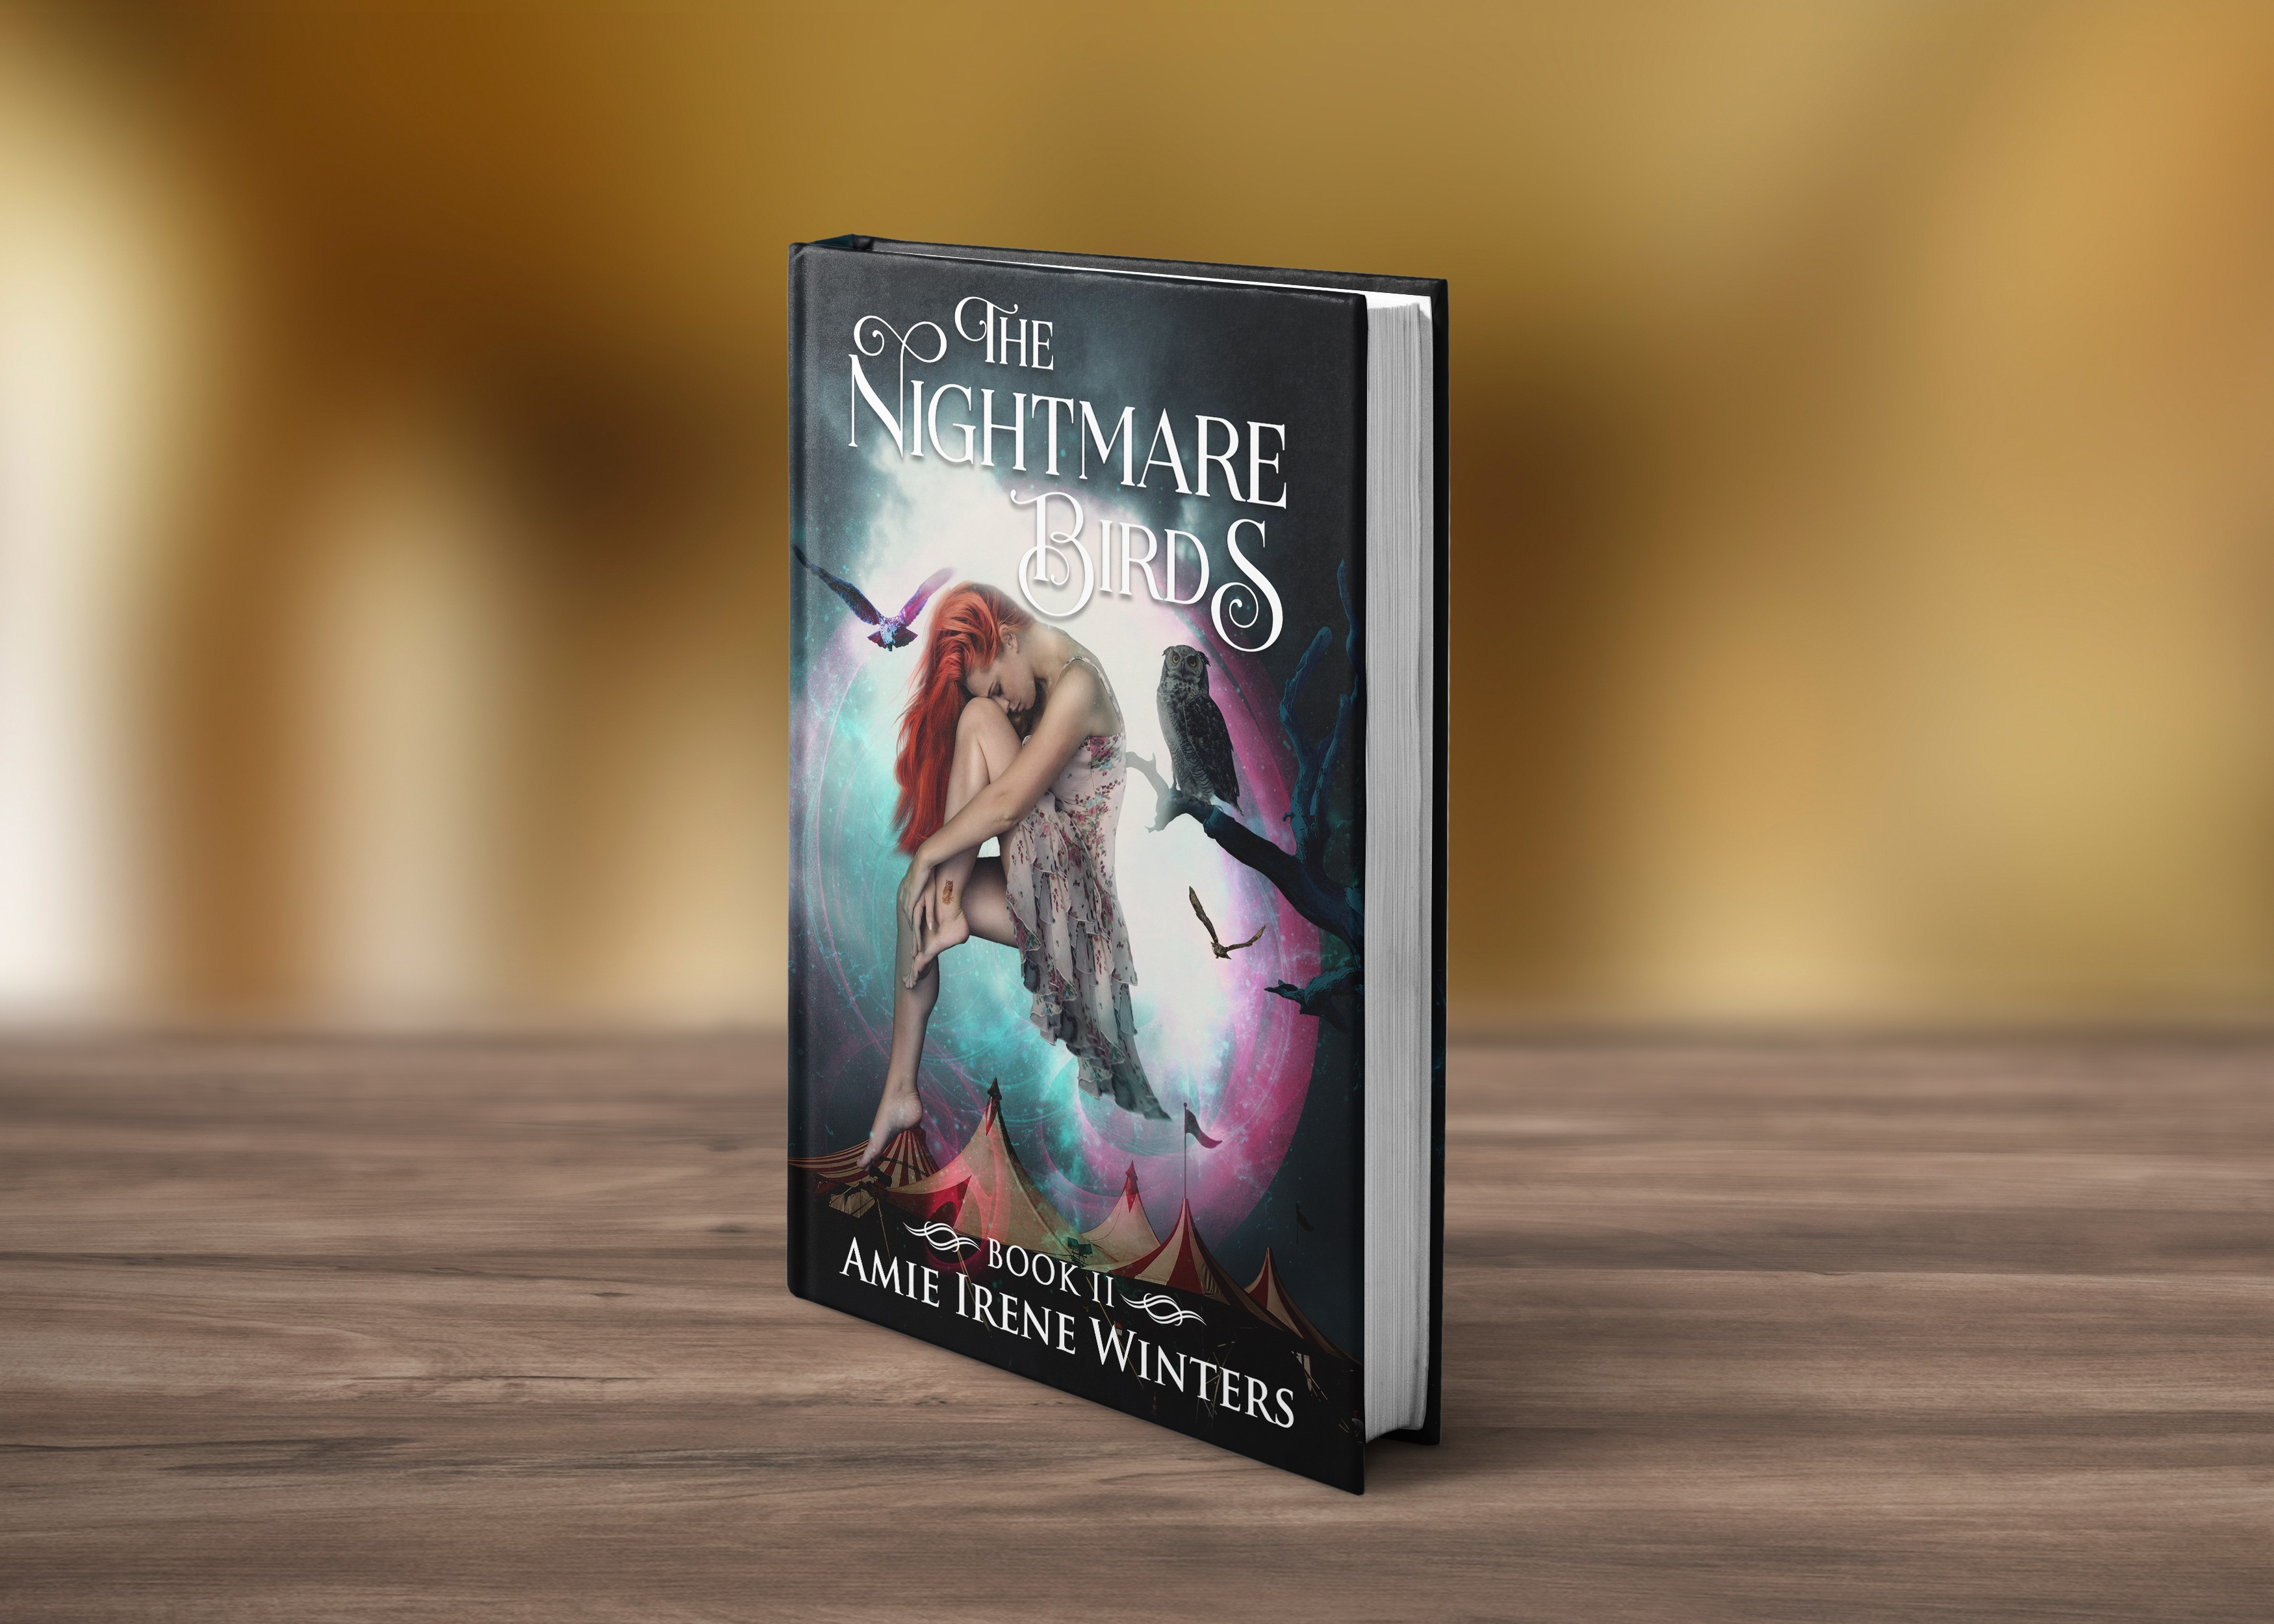 Create an eye-catching, mysterious, magical cover for my YA Fantasy book